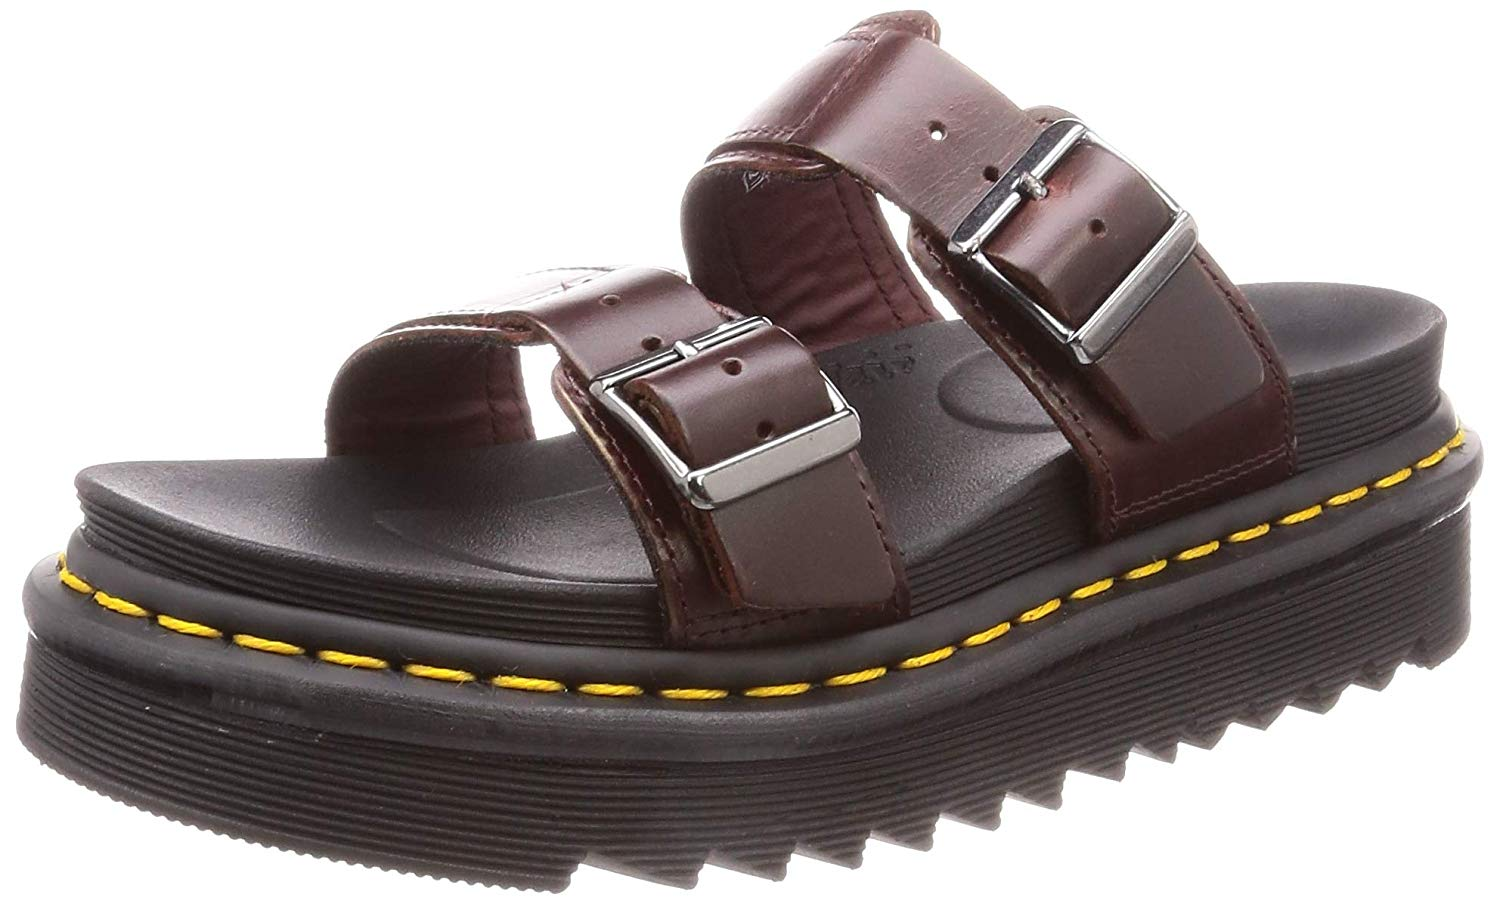 doc martens myles charro brando sandals, casual fashion, casual outfits, casual clothes, casual wear